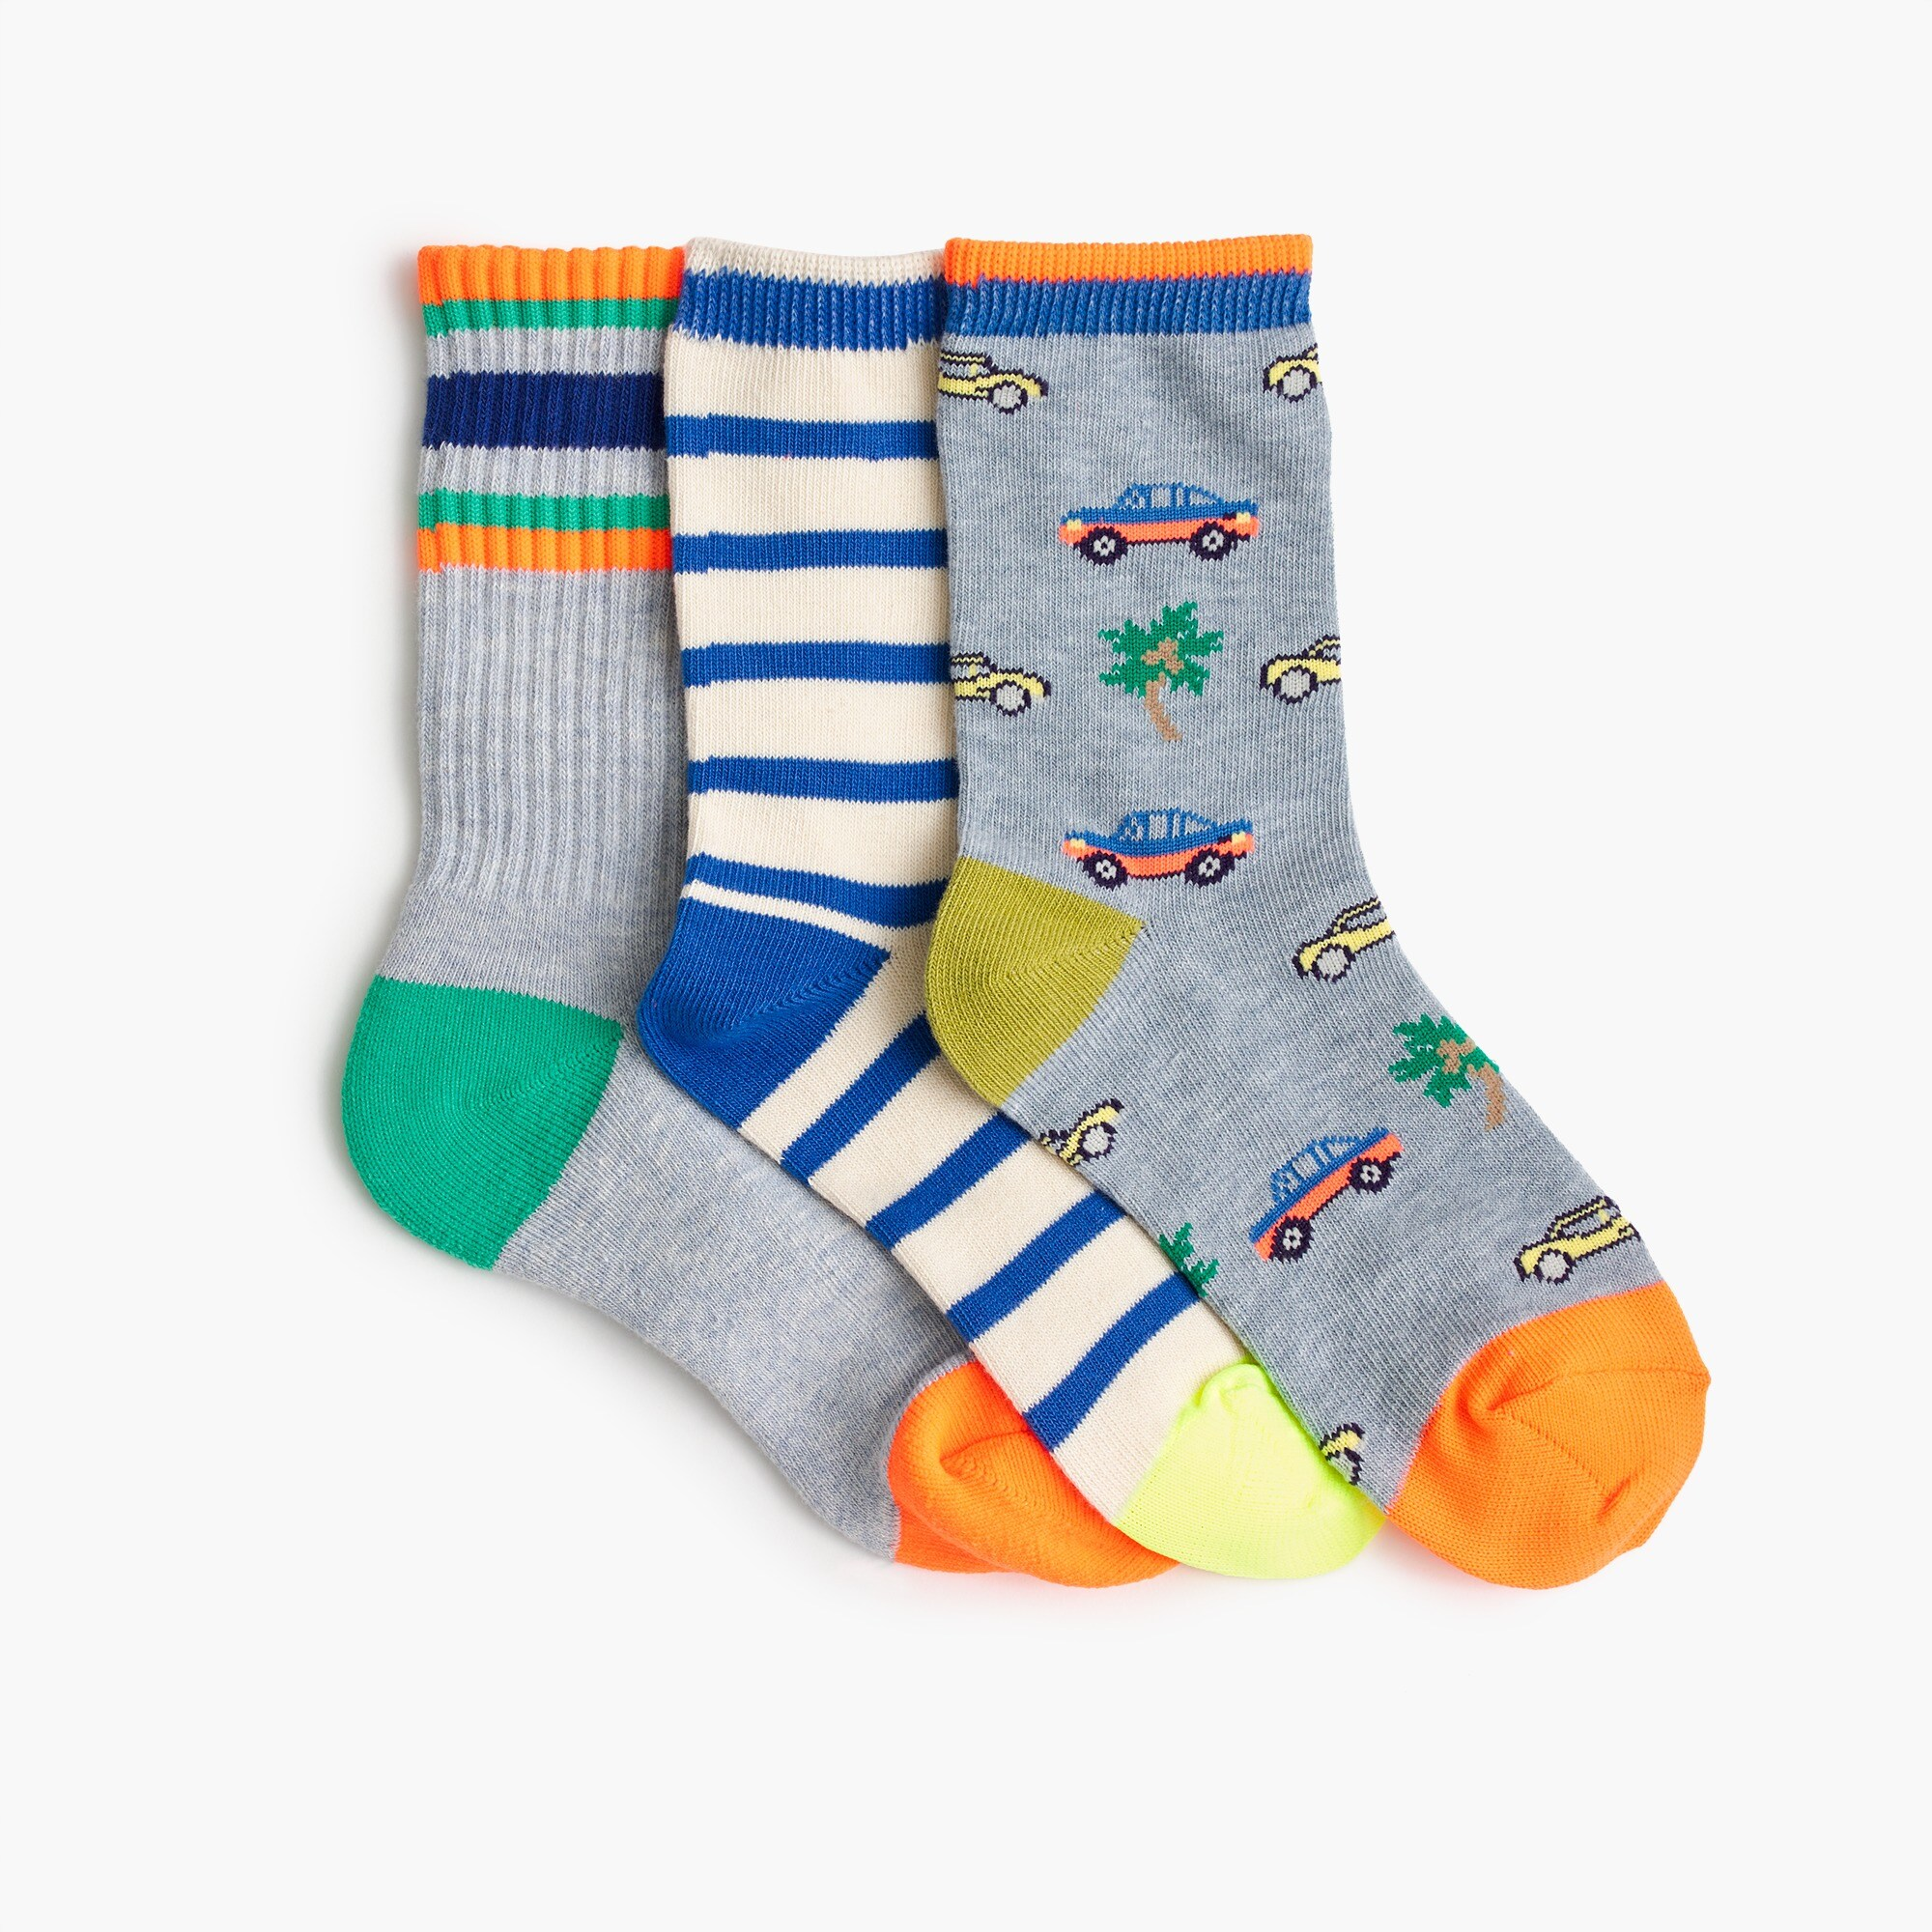 boys' trouser socks three-pack in multi - boys' accessories